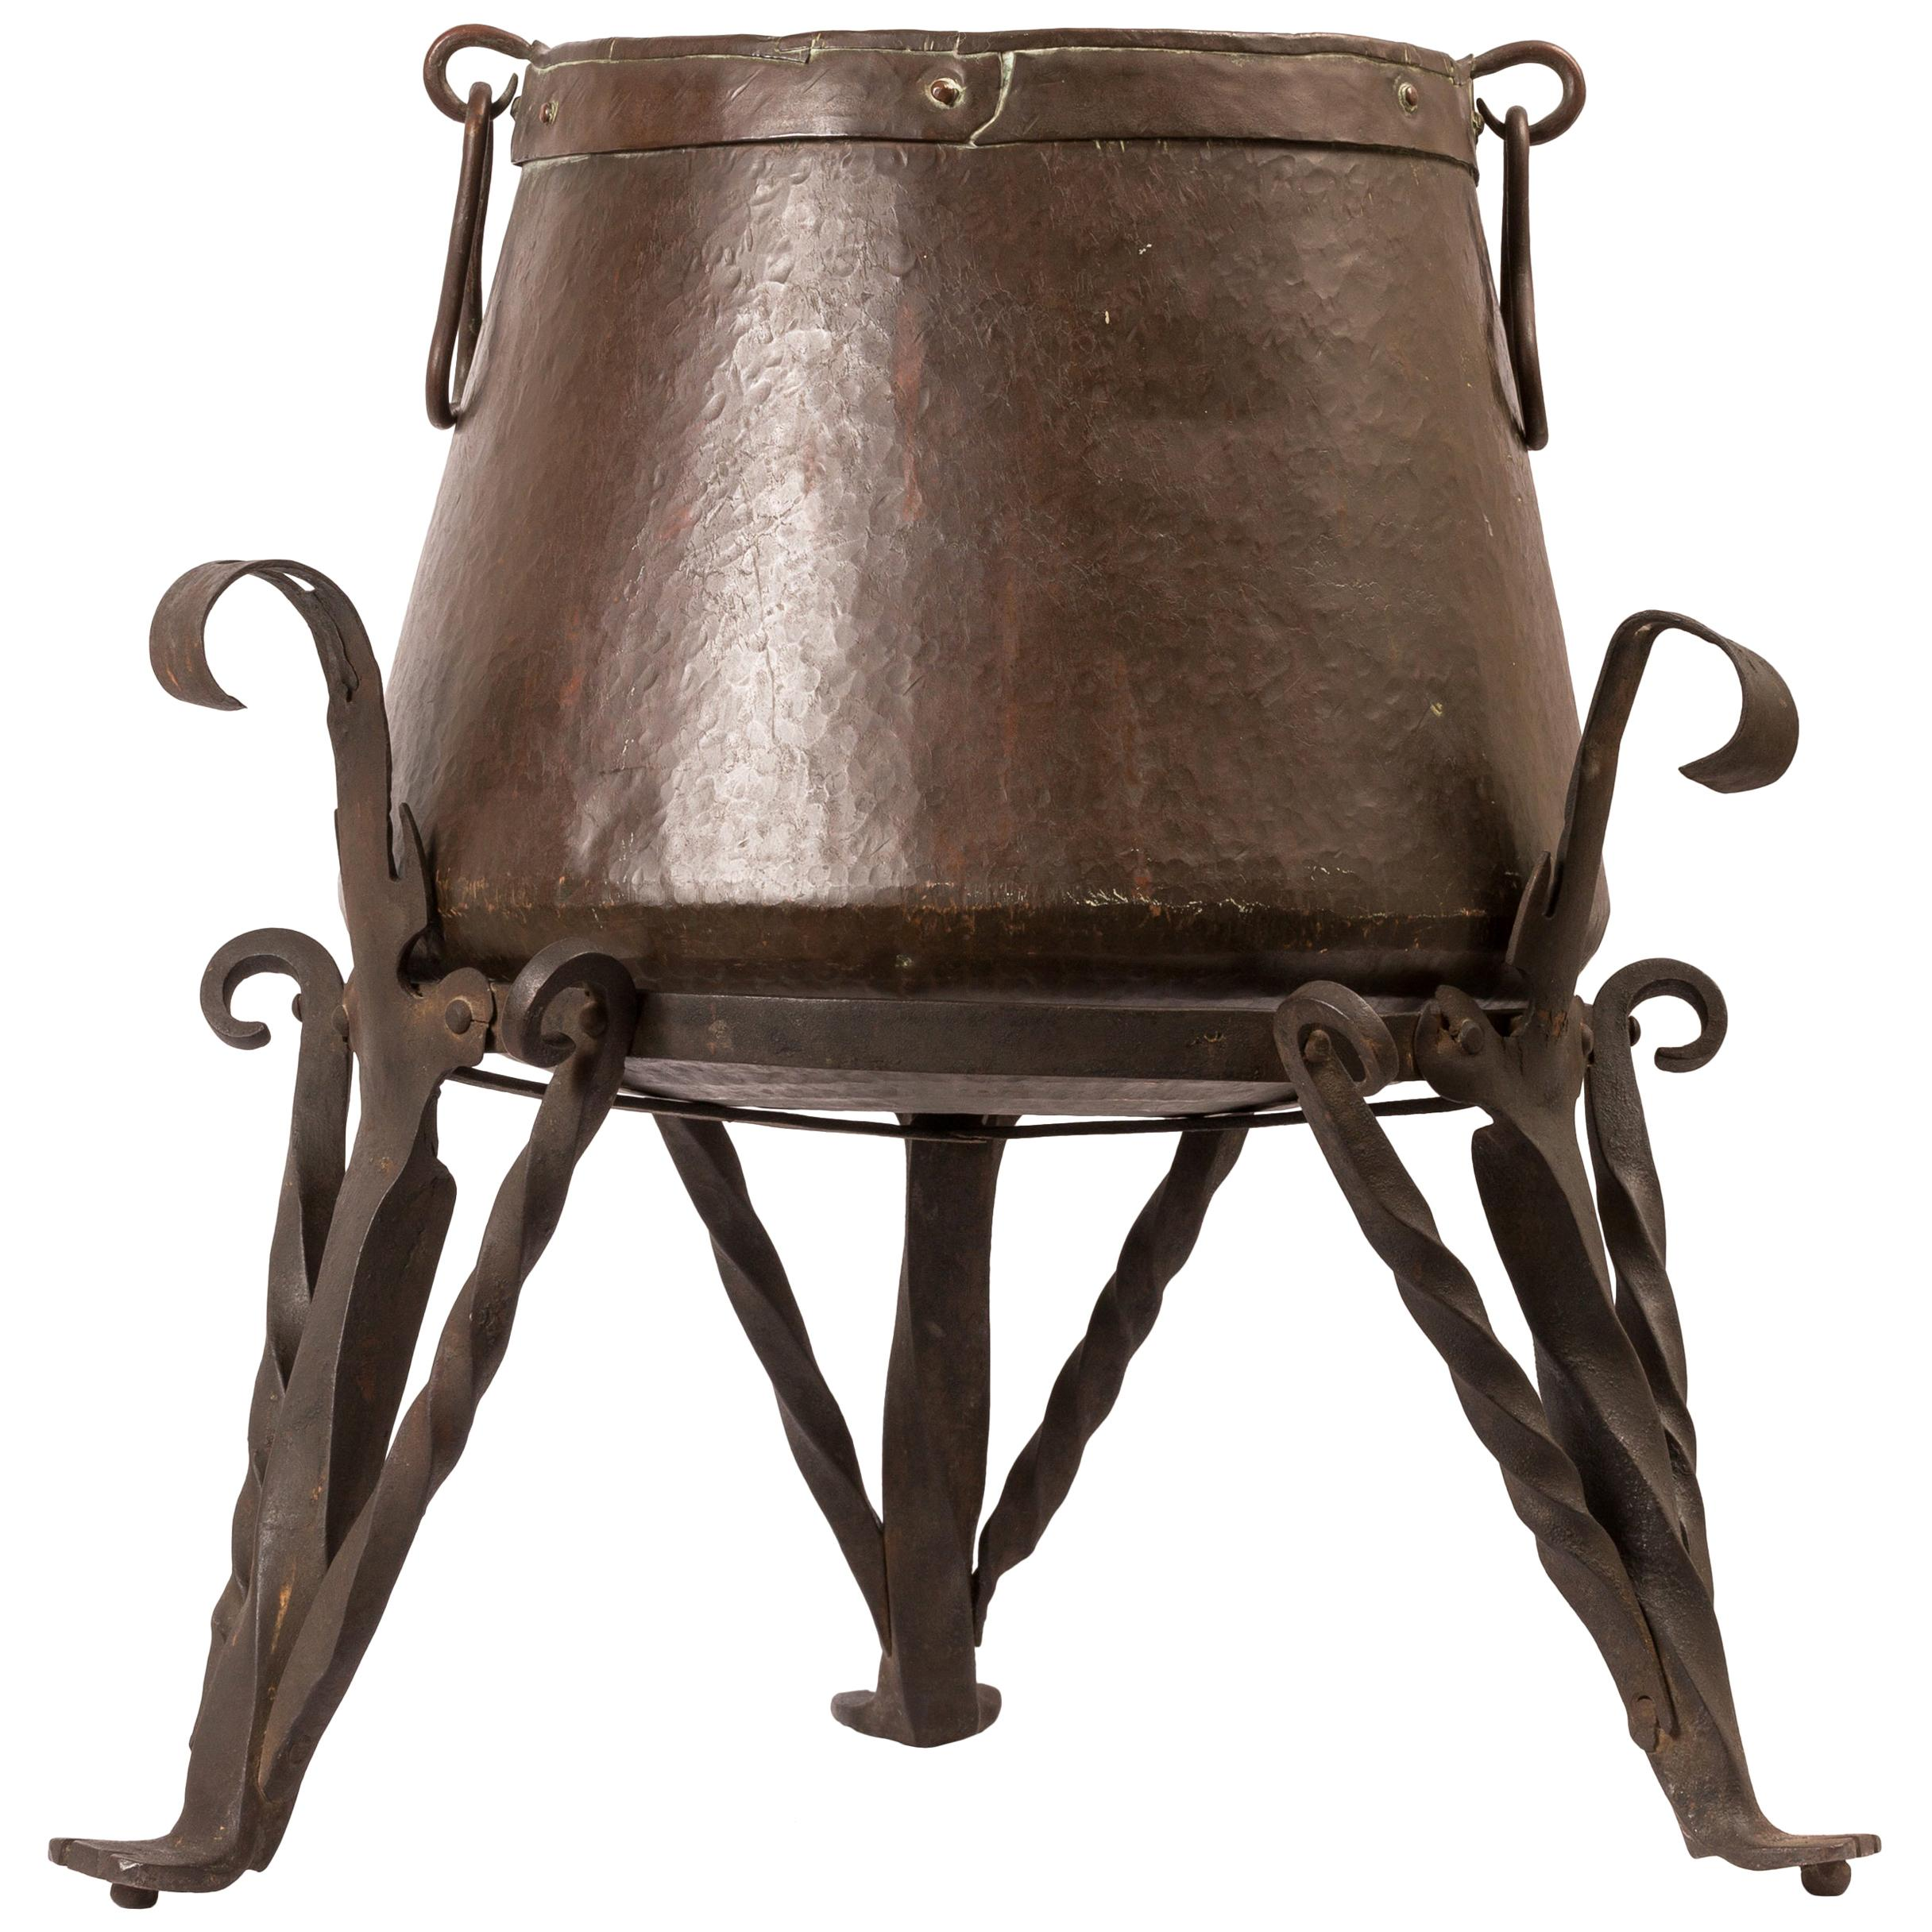 Large 19th Century Copper Cauldron / Planter on Wrought Iron Tripod Stand